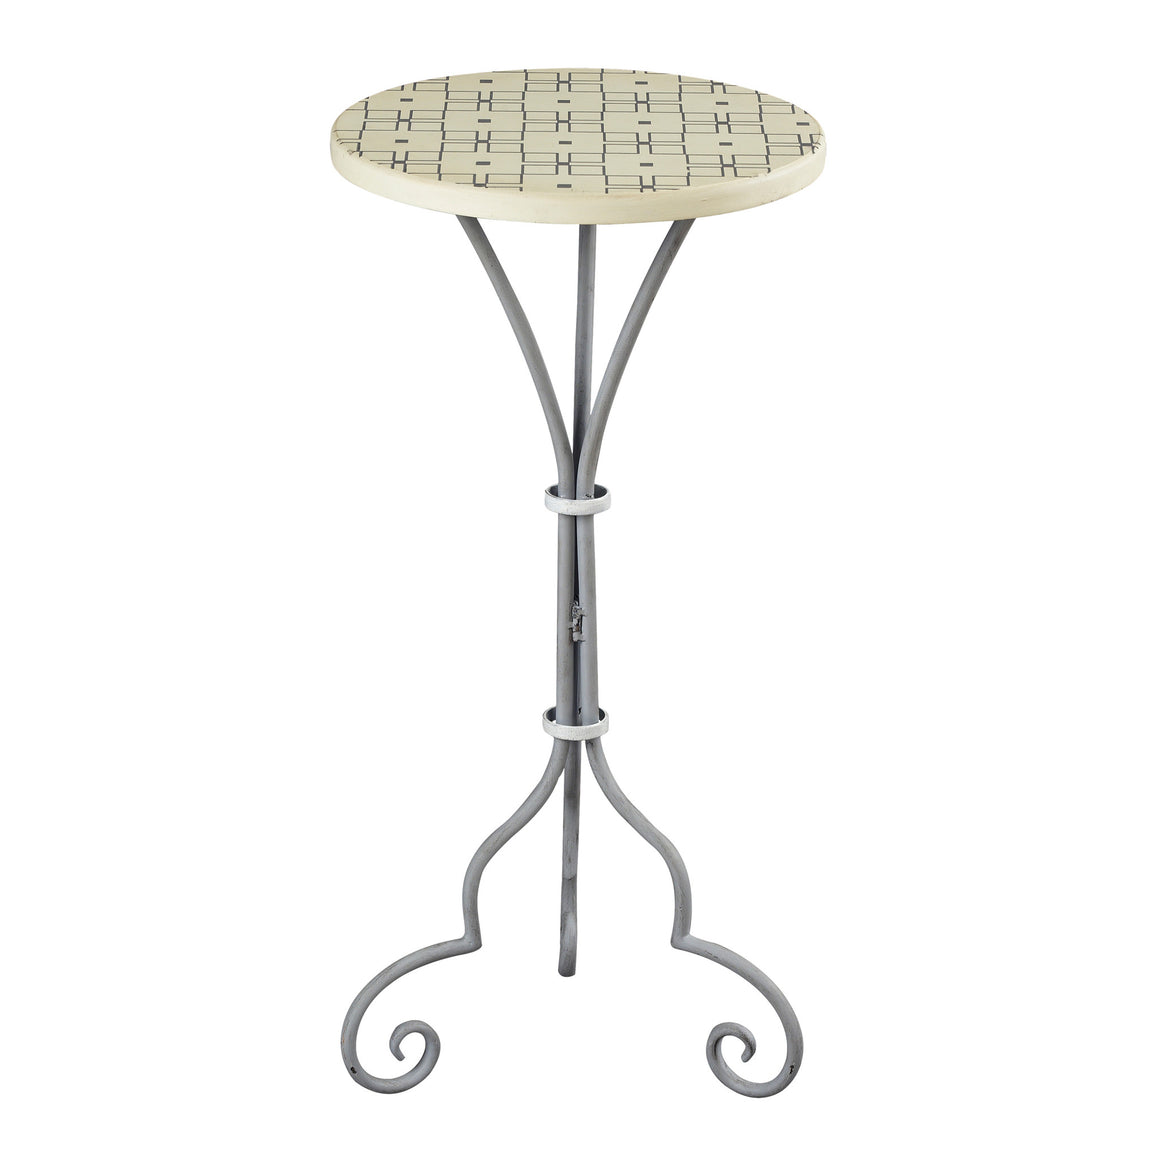 Ayer-Large Plant Stand In Grey / White Painted Finish by Sterling